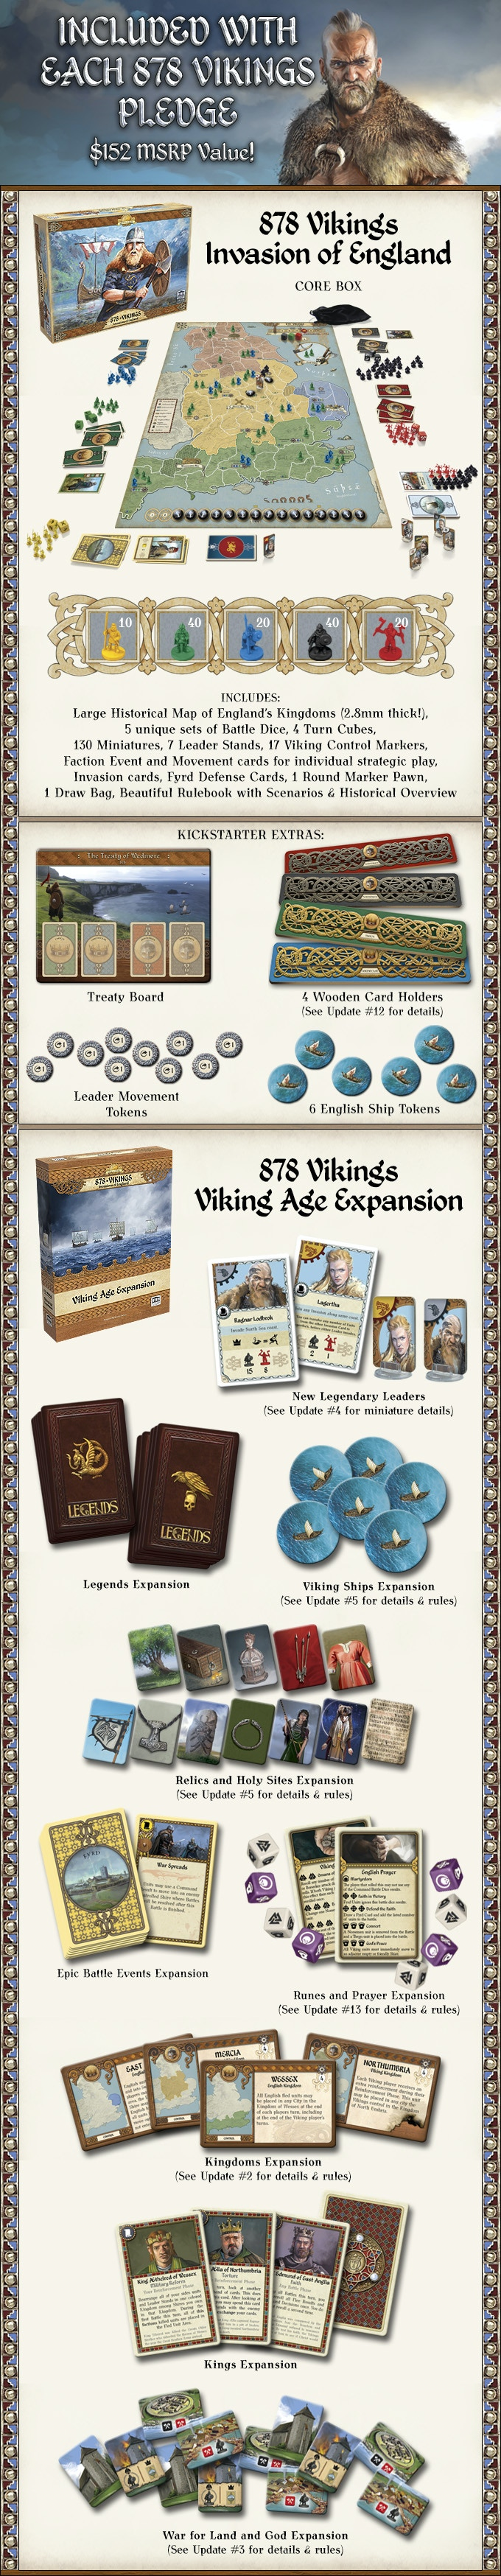 878 Vikings - Invasions of England by Academy Games